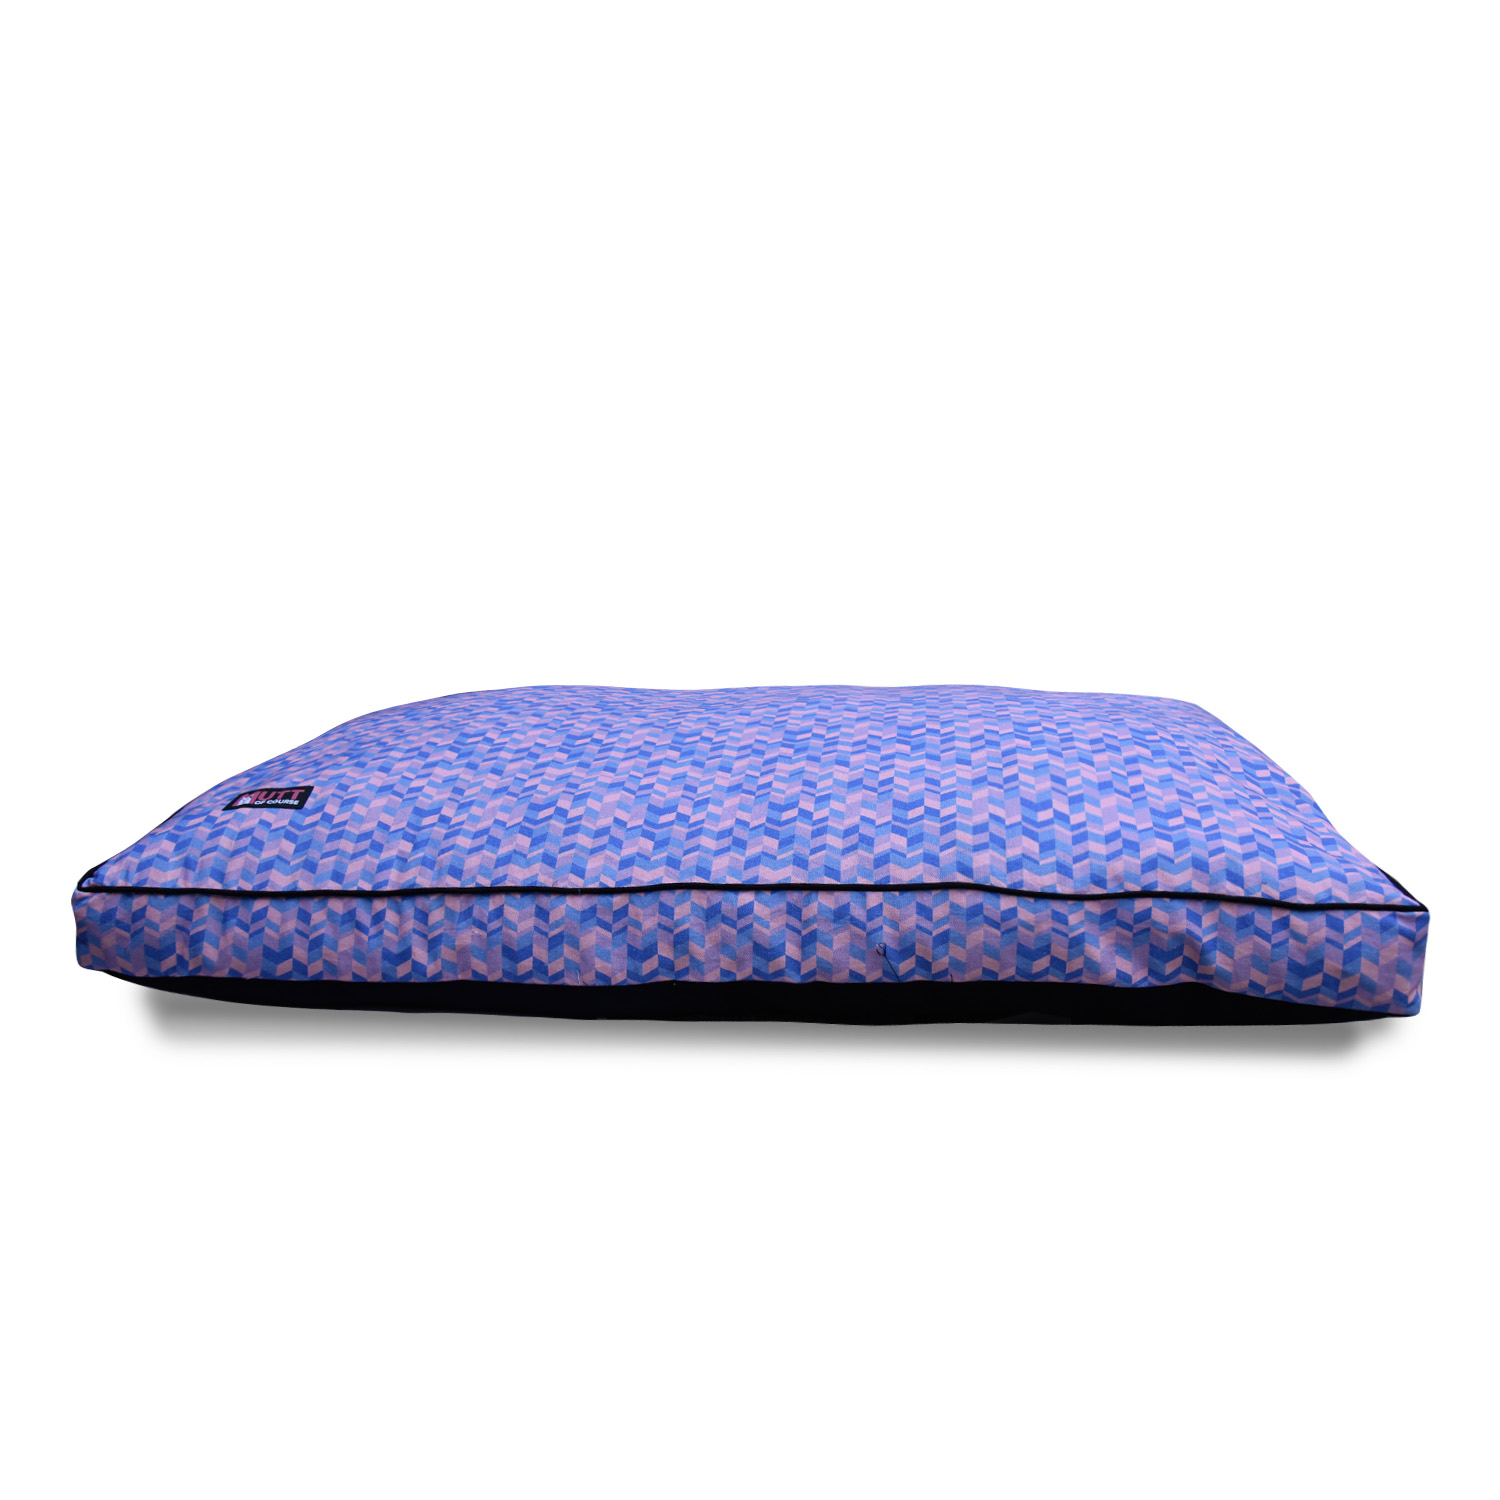 Mutt Of Course Geometrical Light Flat Bed - Xlarge